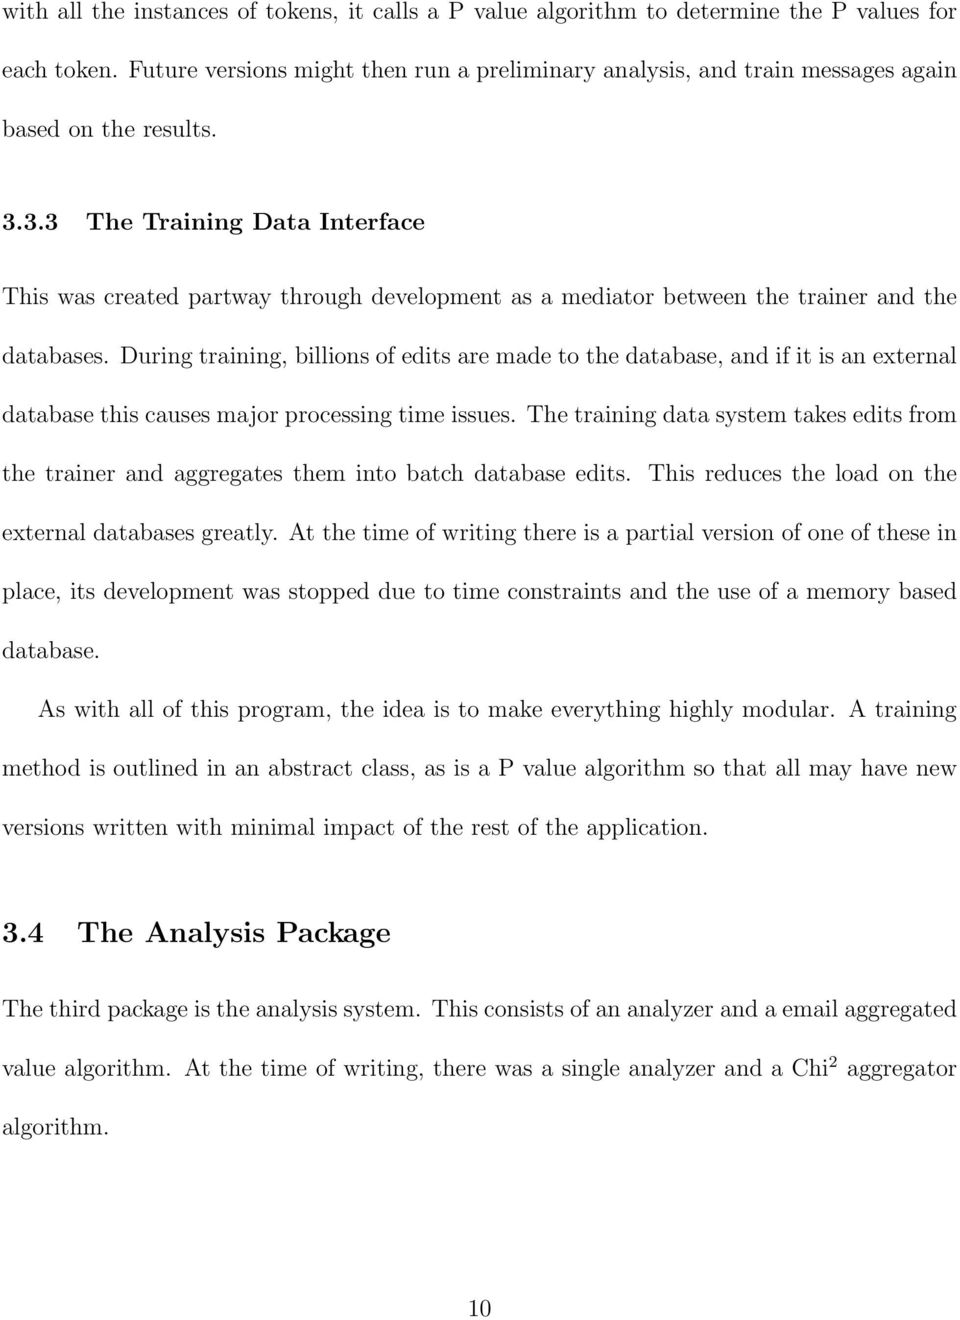 3.3 The Training Data Interface This was created partway through development as a mediator between the trainer and the databases.